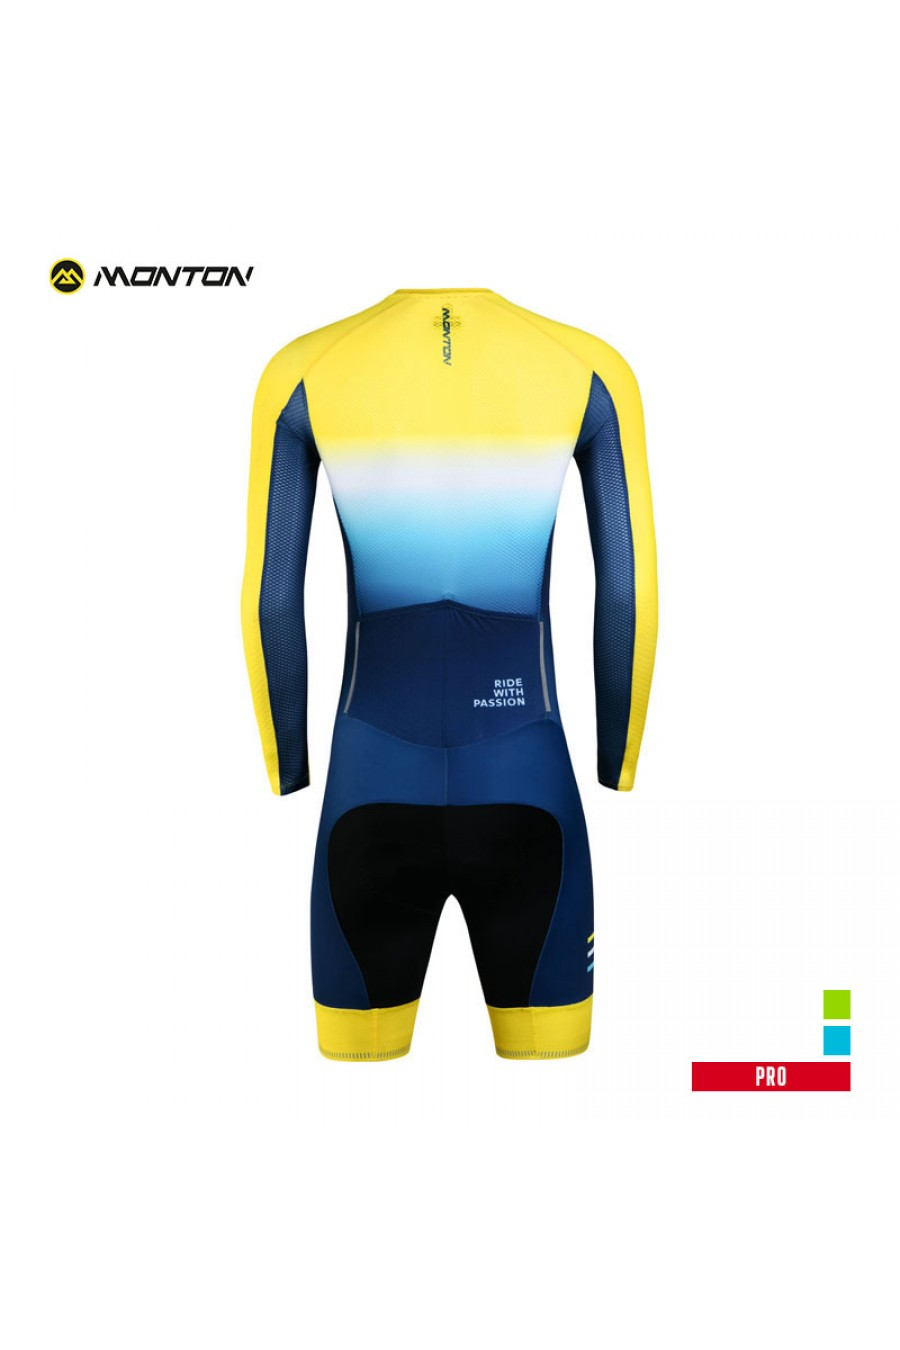 buy mens time trial skin suits cycling for sale